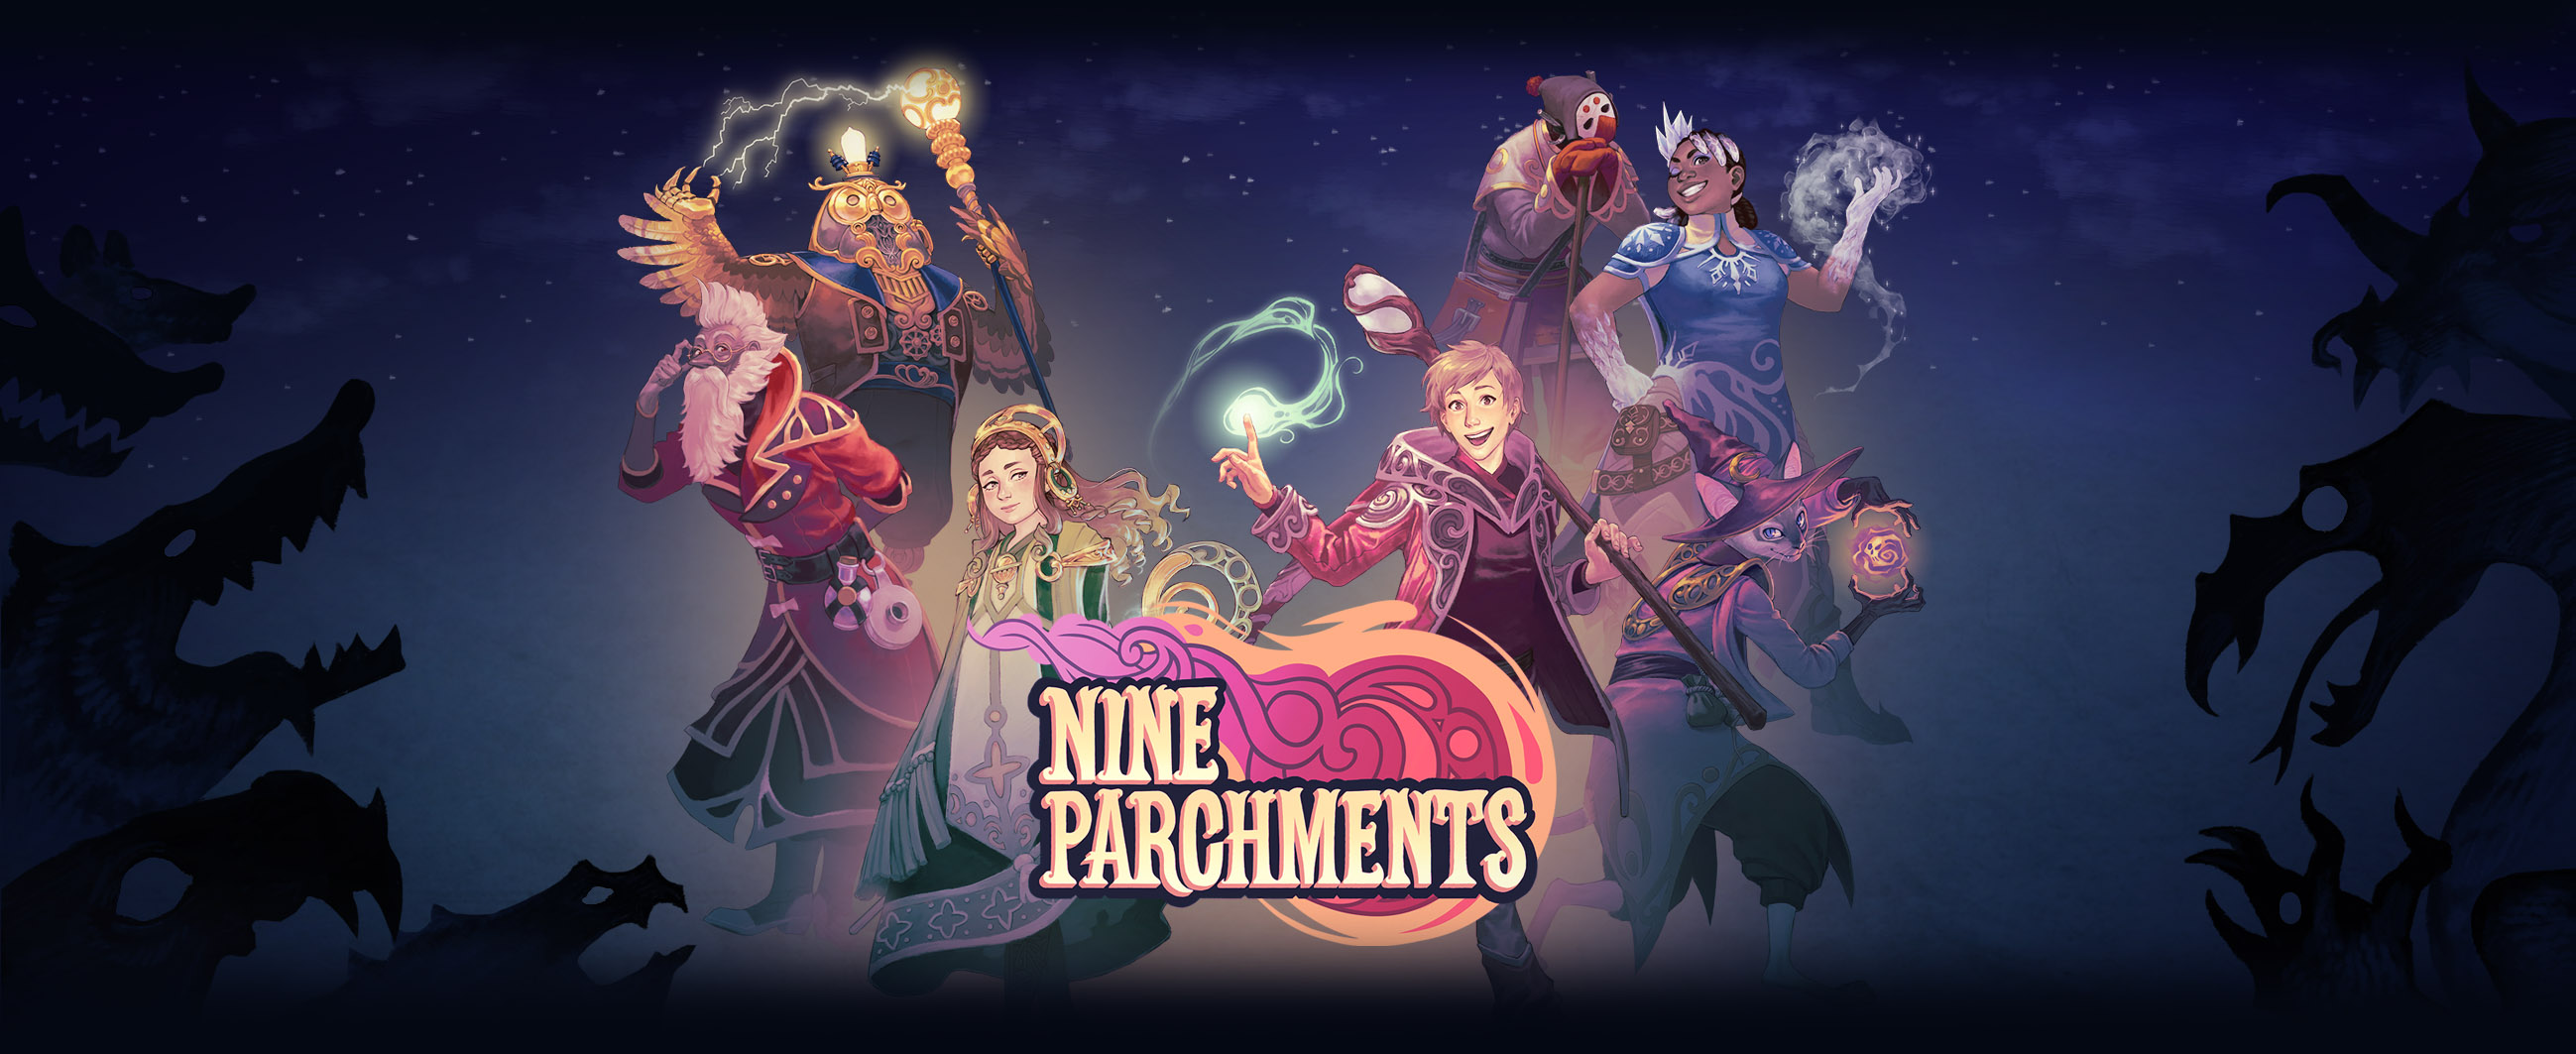 [Gamescom 2017] Novo vídeo com o gameplay de Nine Parchments